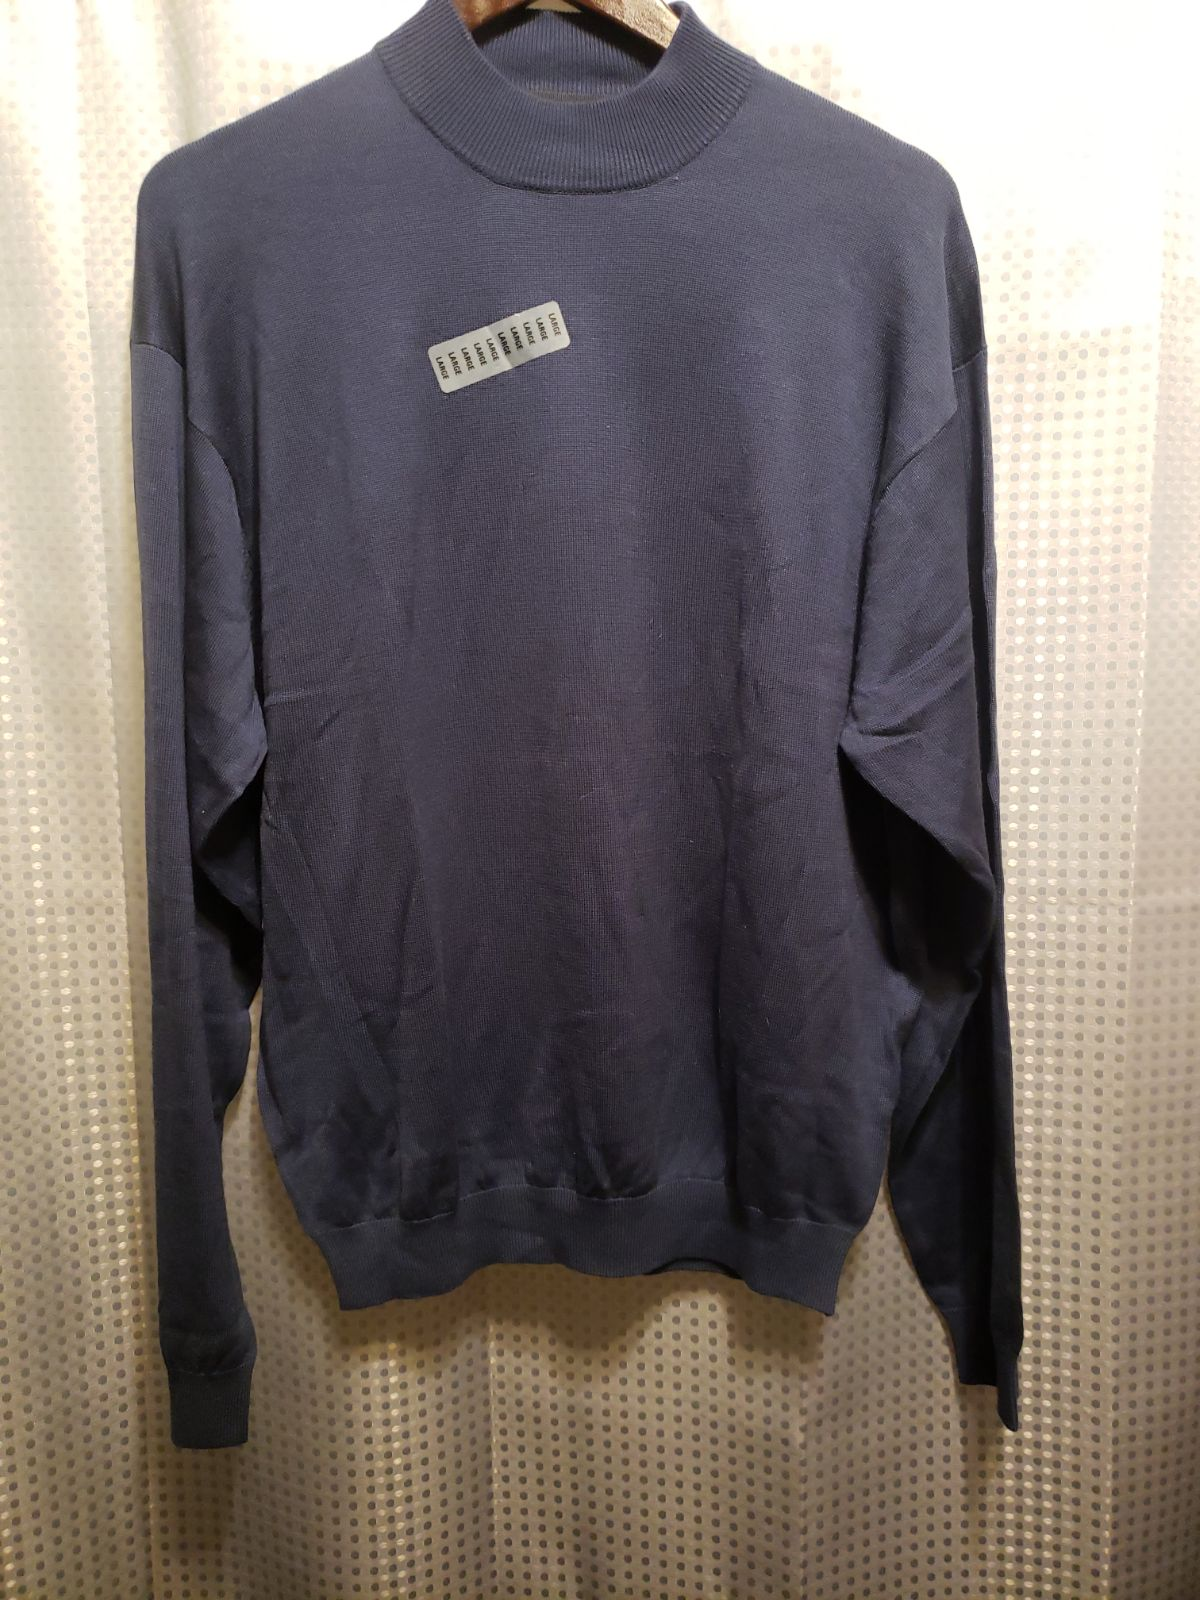 NWT Large Men's Warehouse Navy Sweater